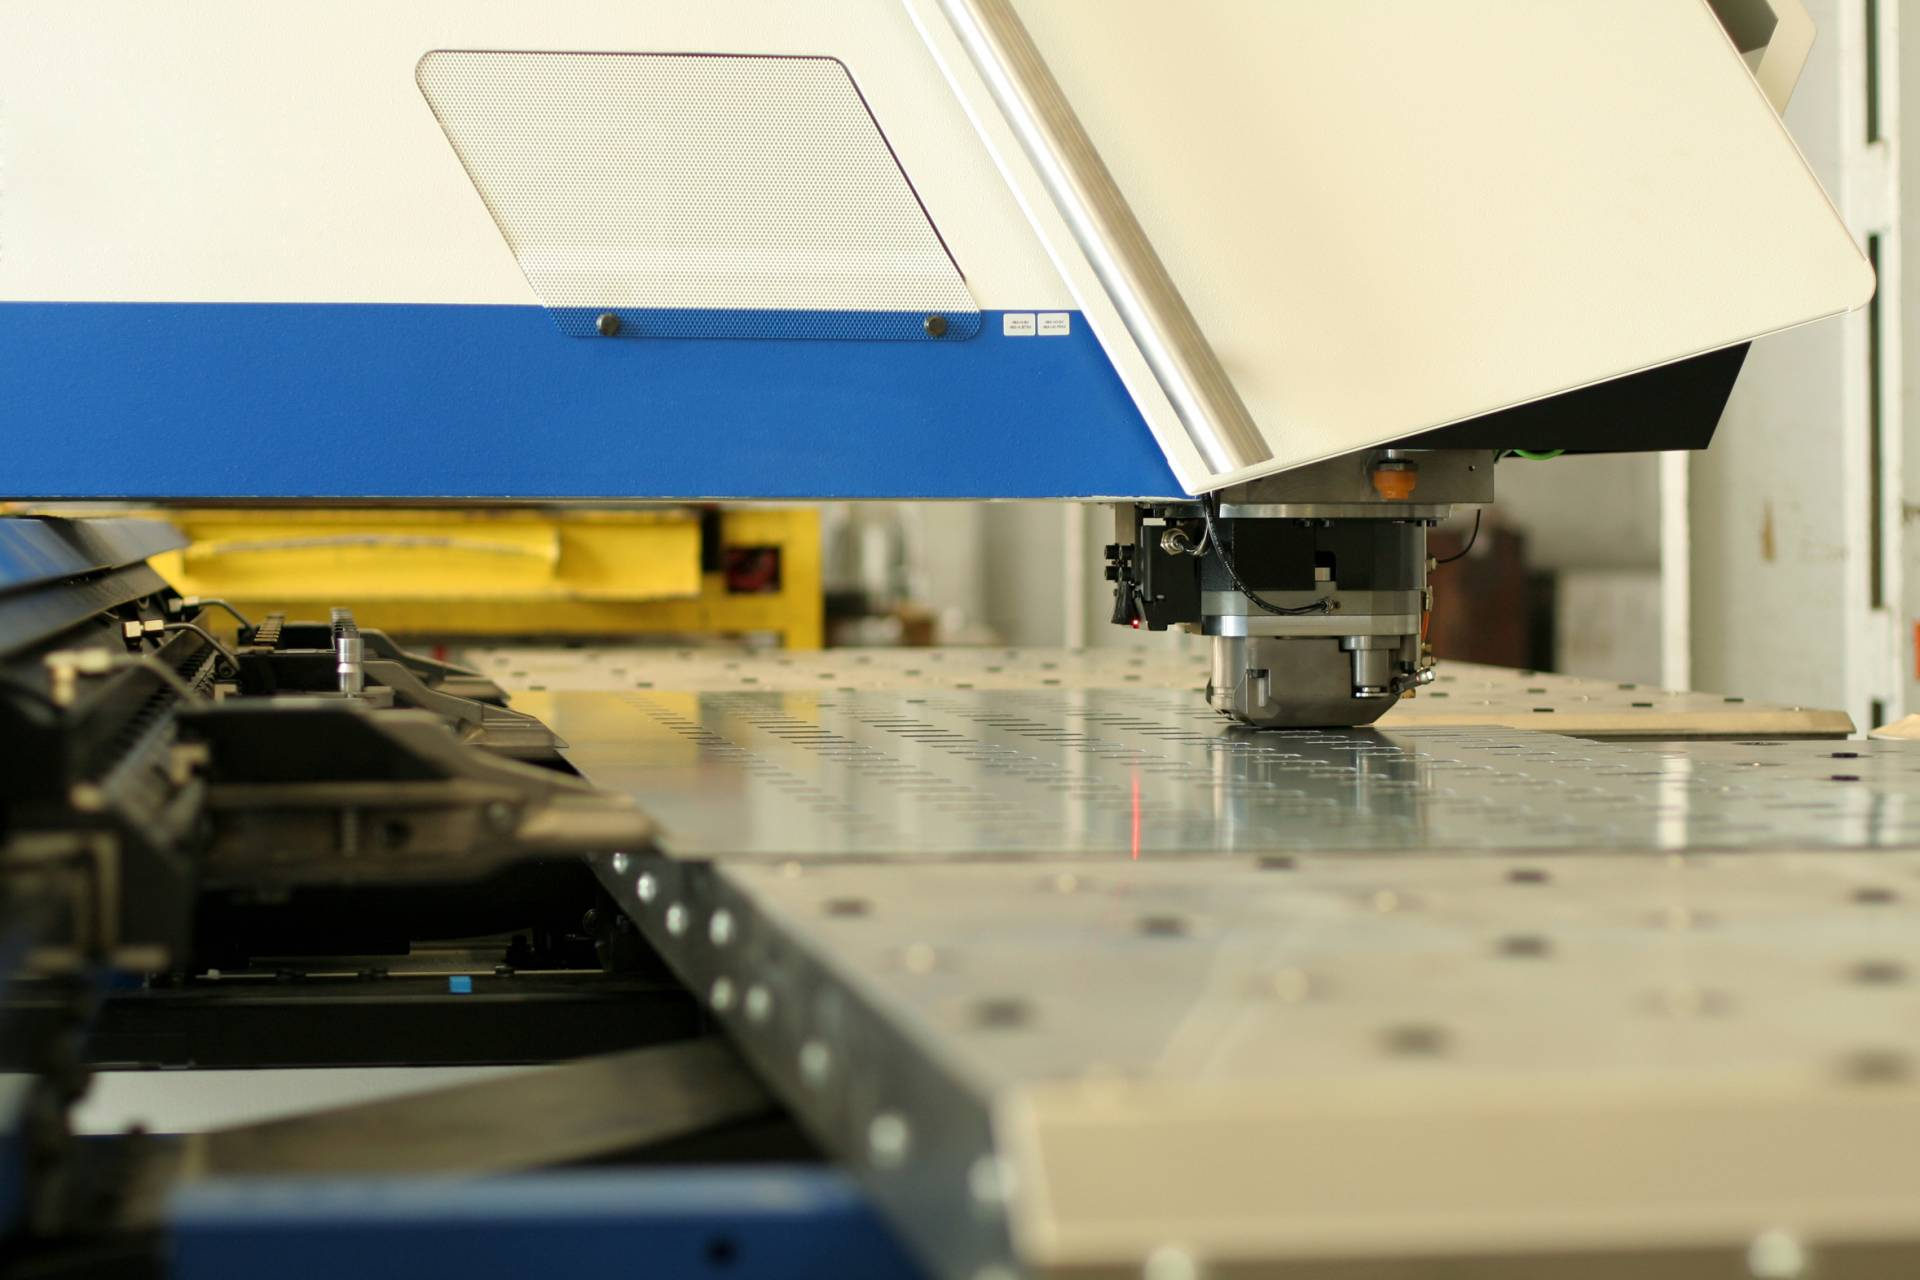 Precise working with metal sheets